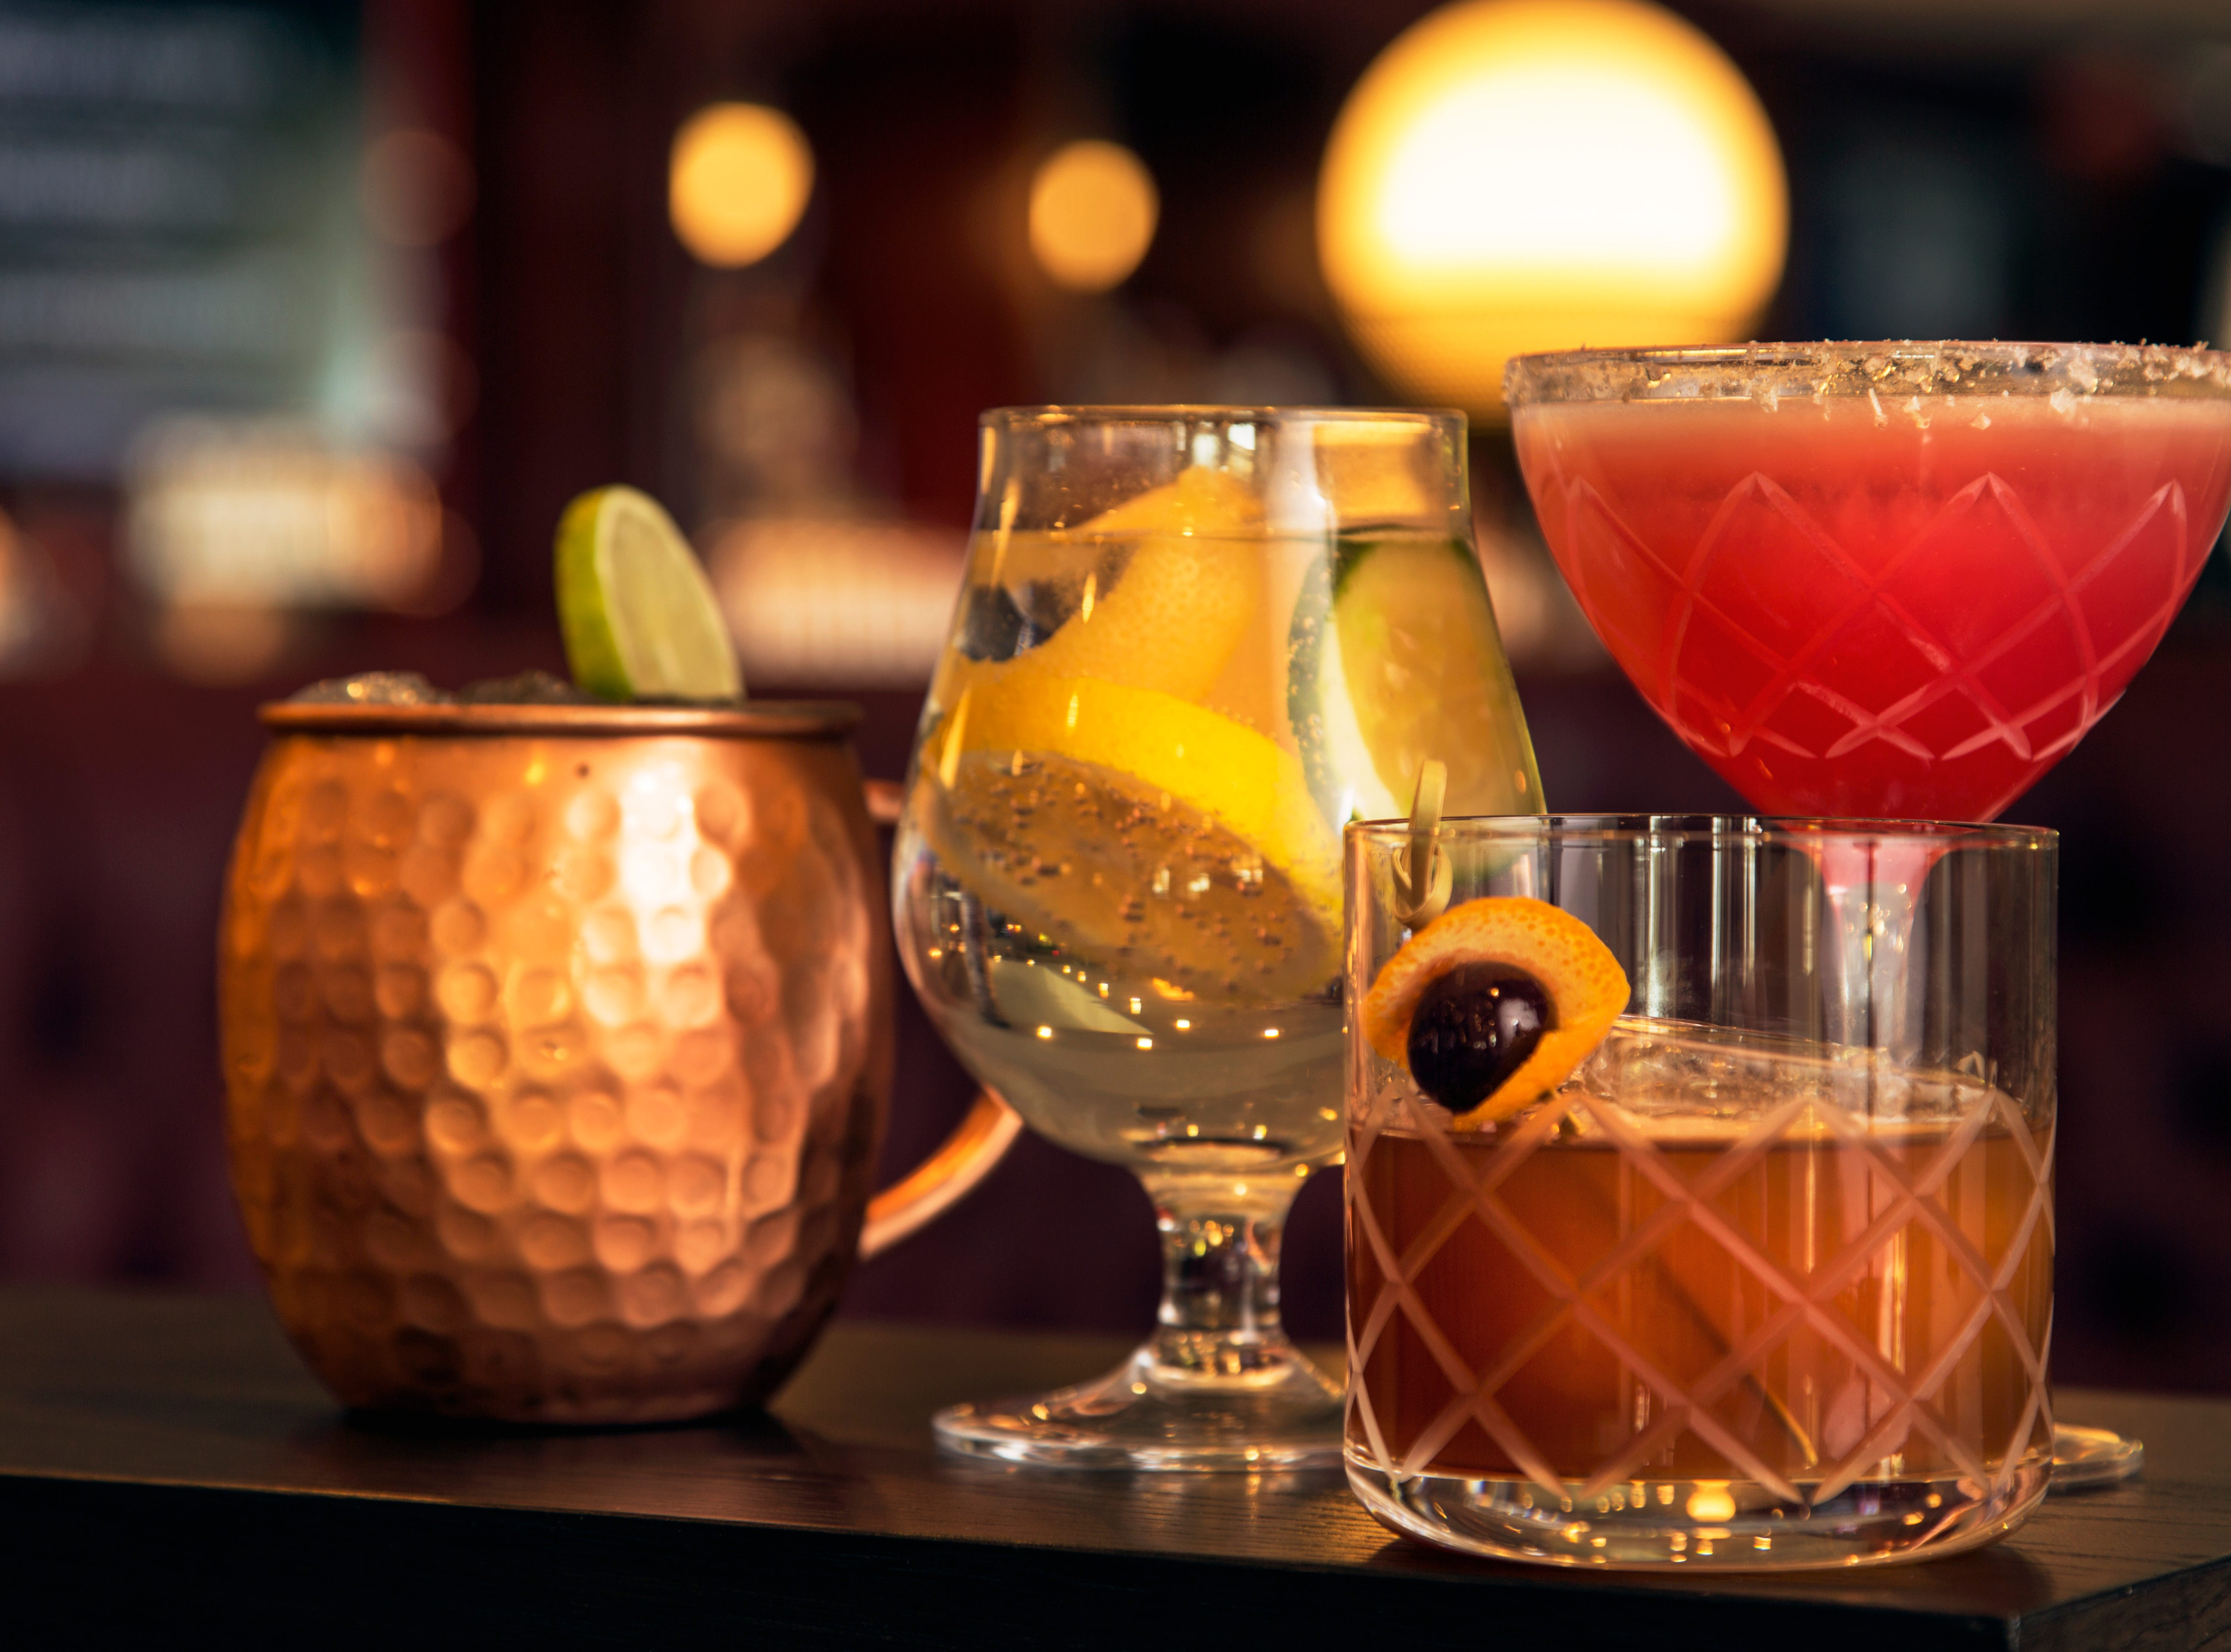 The Tavern will serve up happy hour daily between 3:00 p.m. and 6:00 p.m.,  $4 drink specials, featuring $4 beer, $4 wine, $4 margaritas and $4 mules.